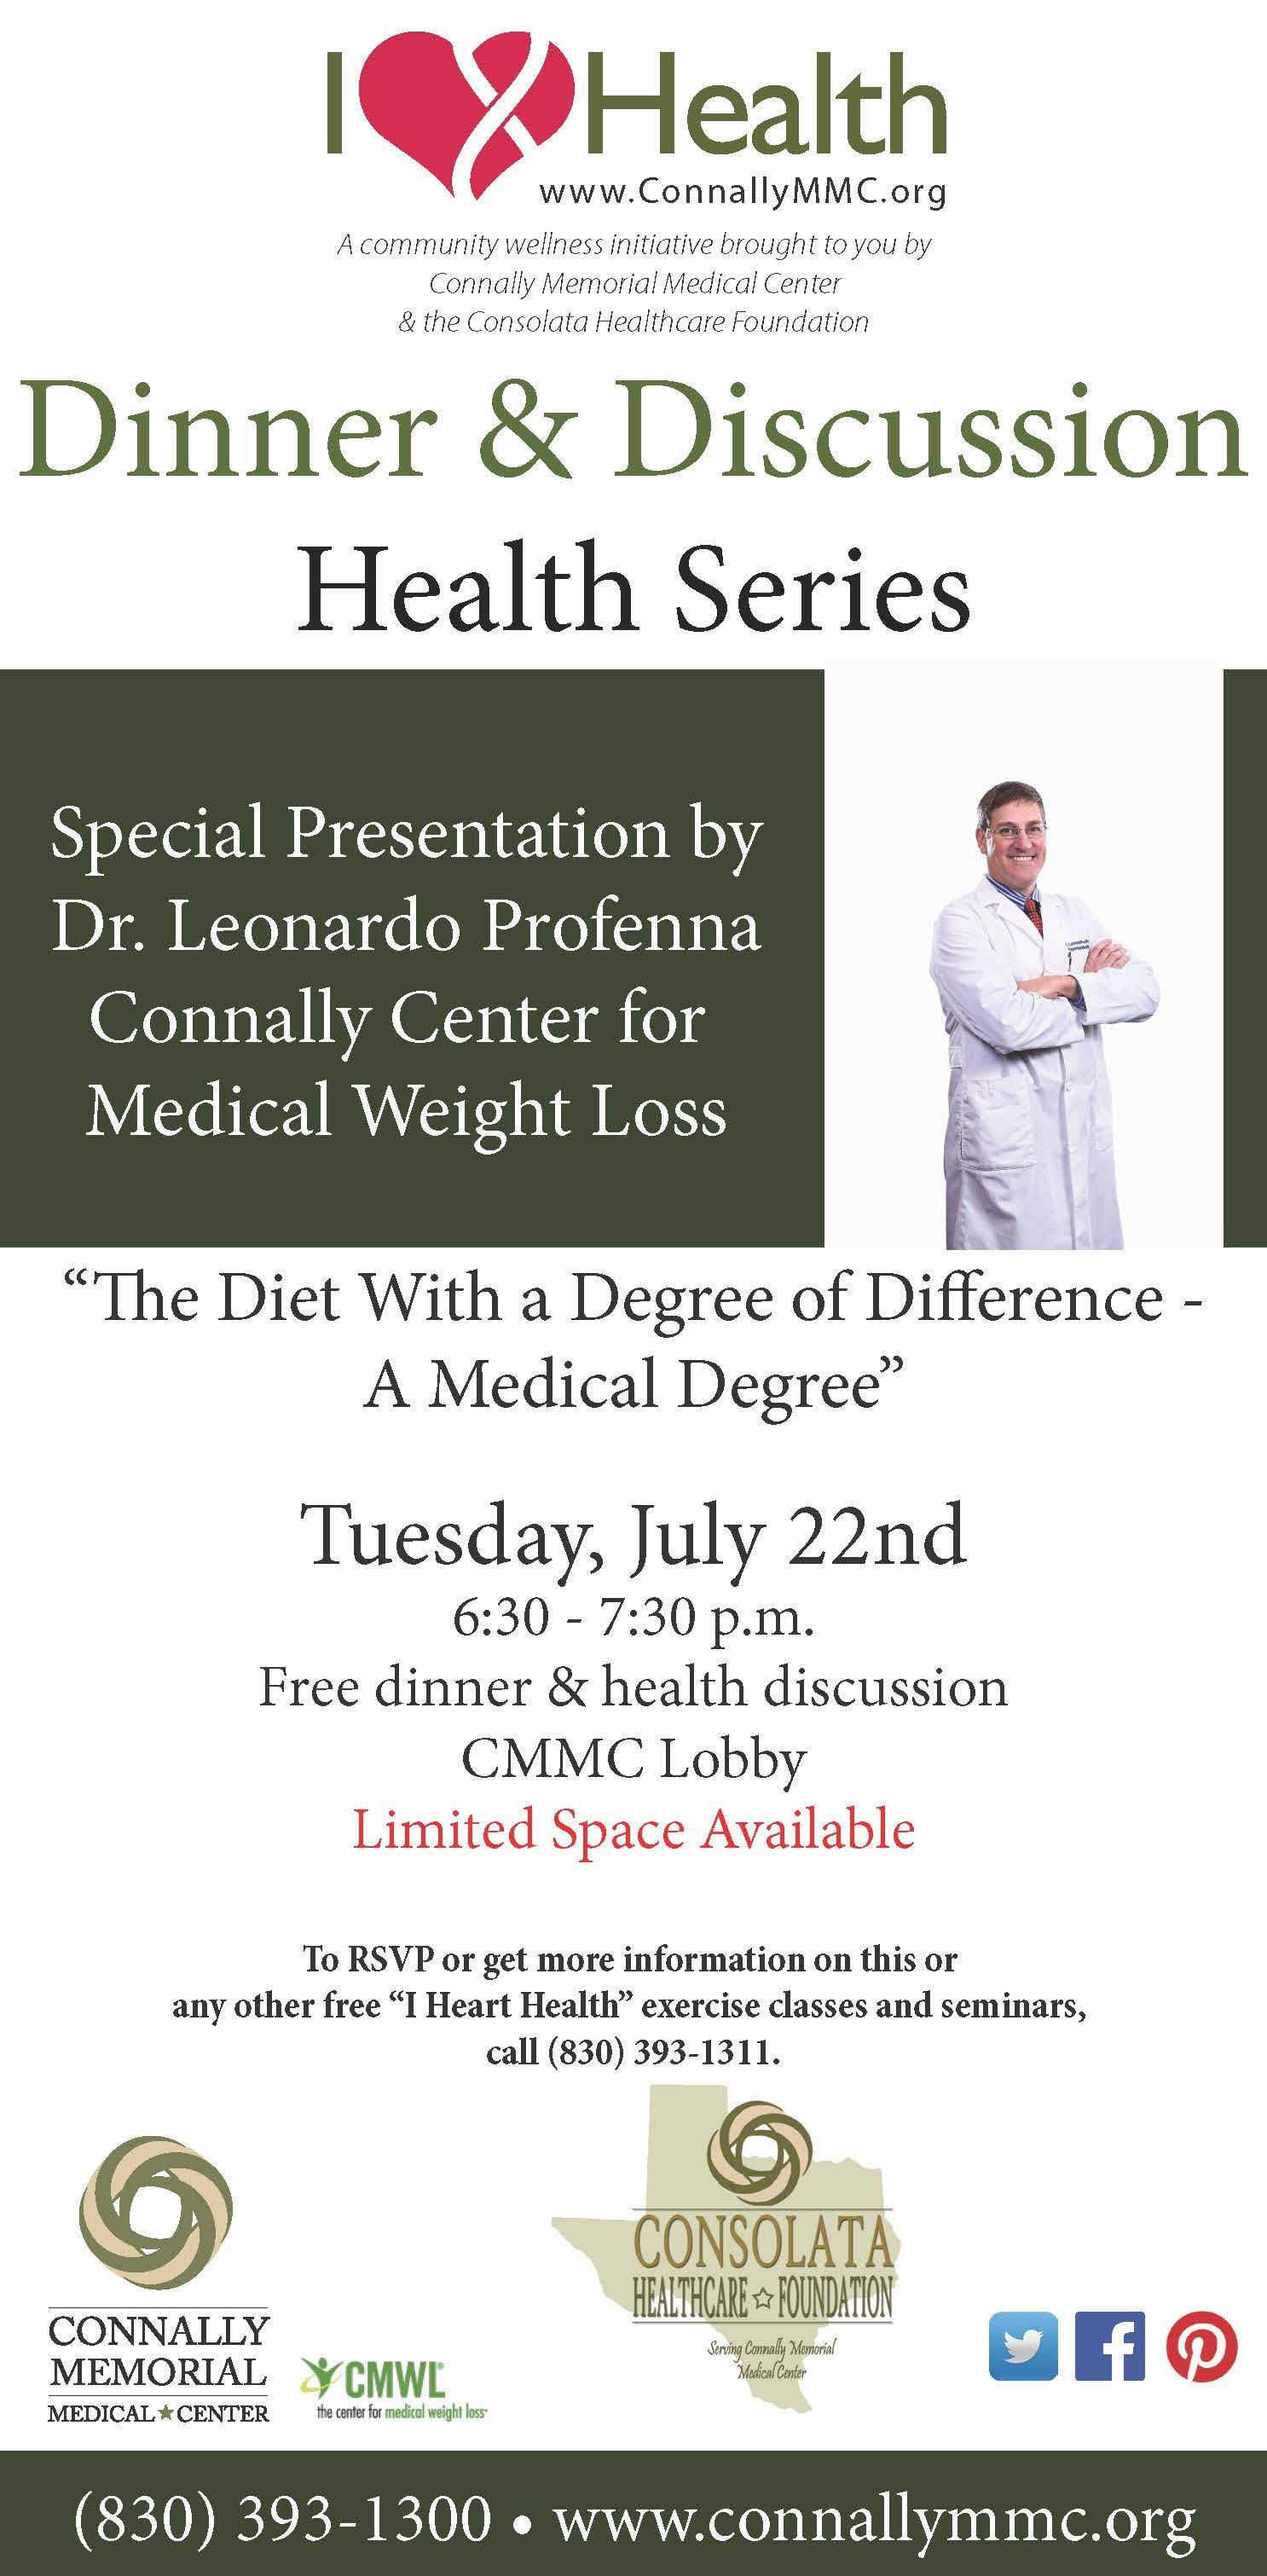 Free Dinner Discussion Tomorrow From 6 30 7 30 Pm With Dr